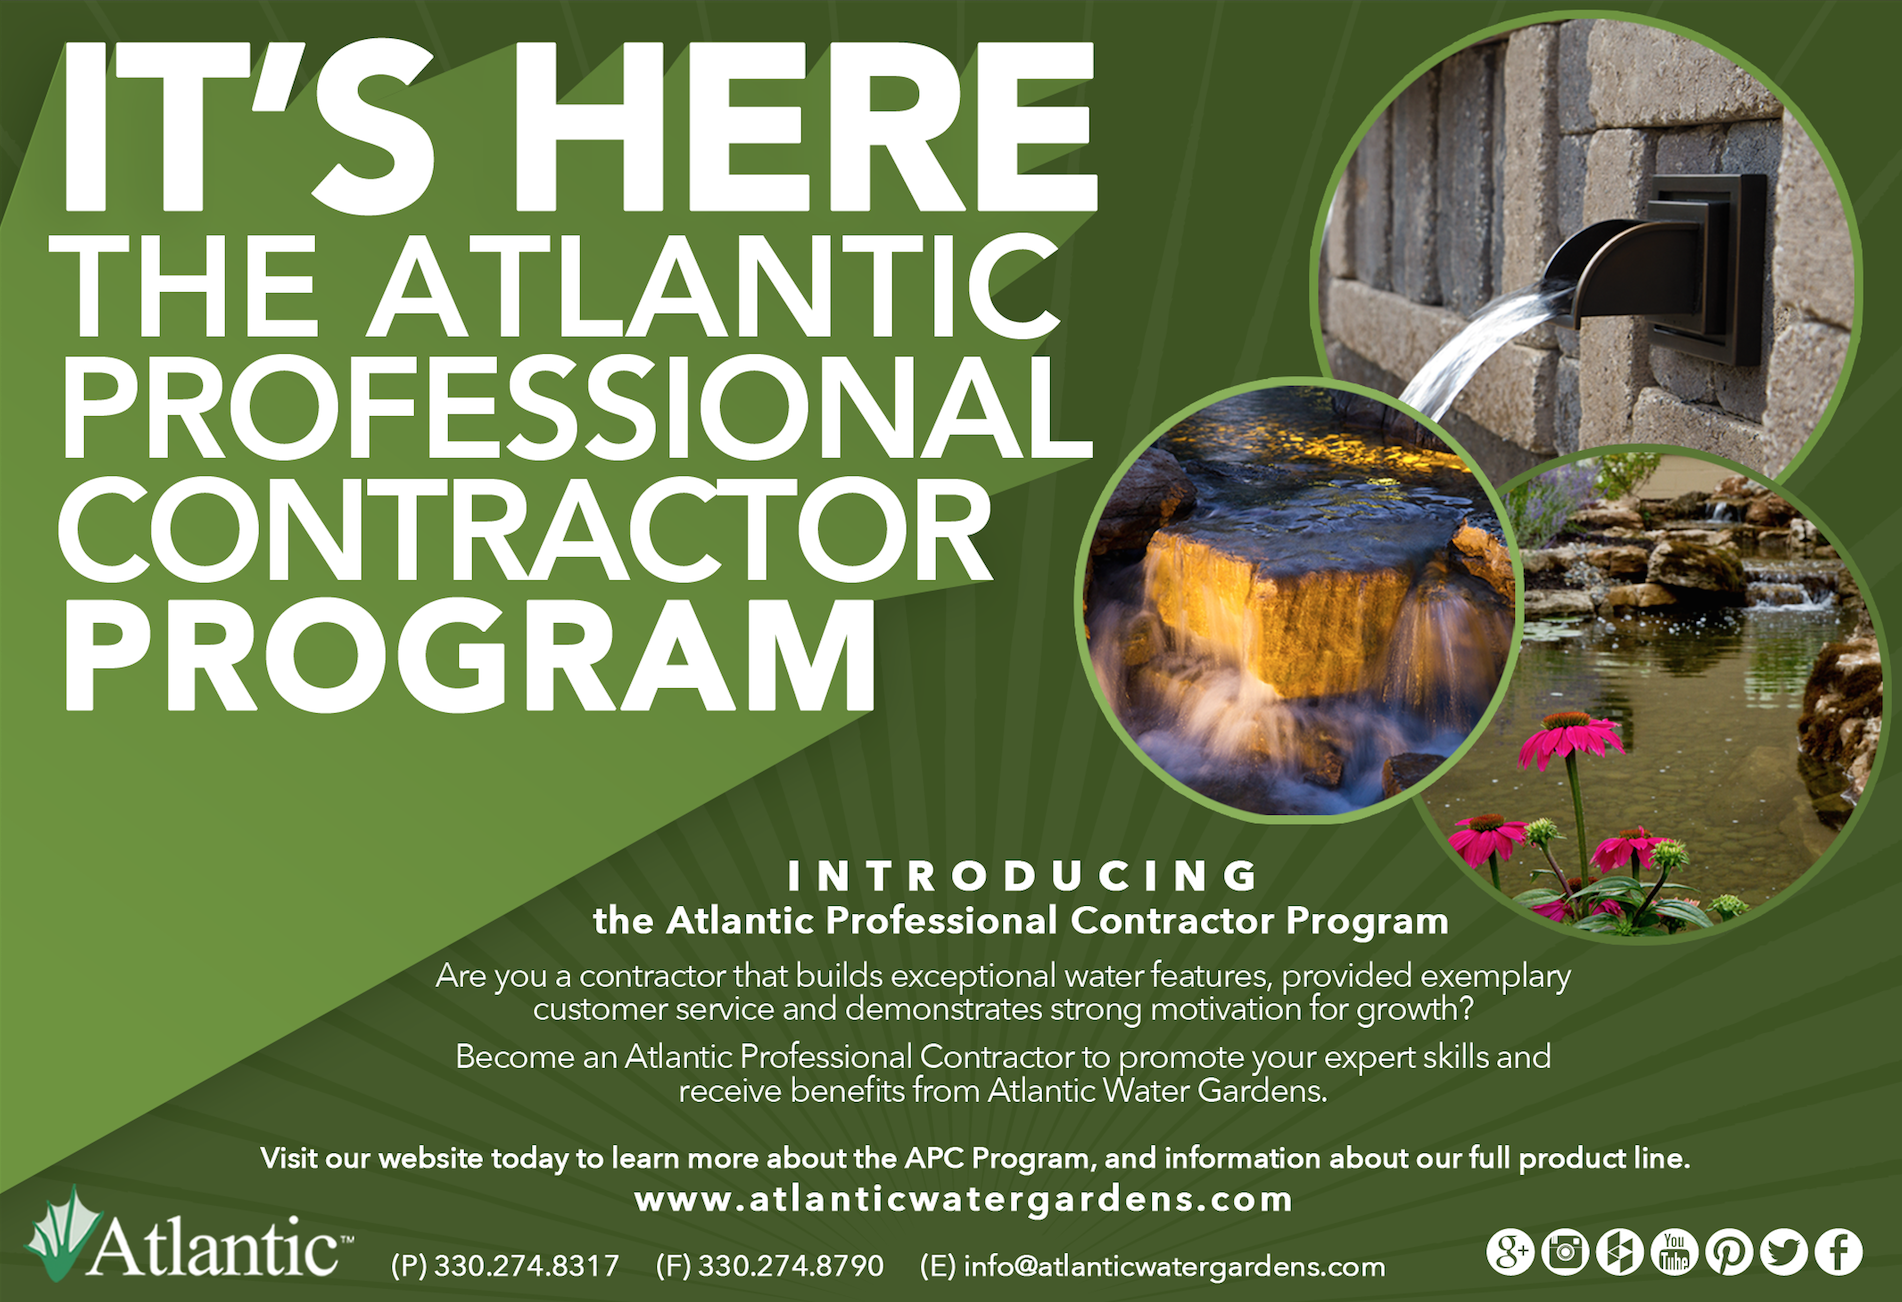 Contractor Information About Atlantic Water Gardens Products